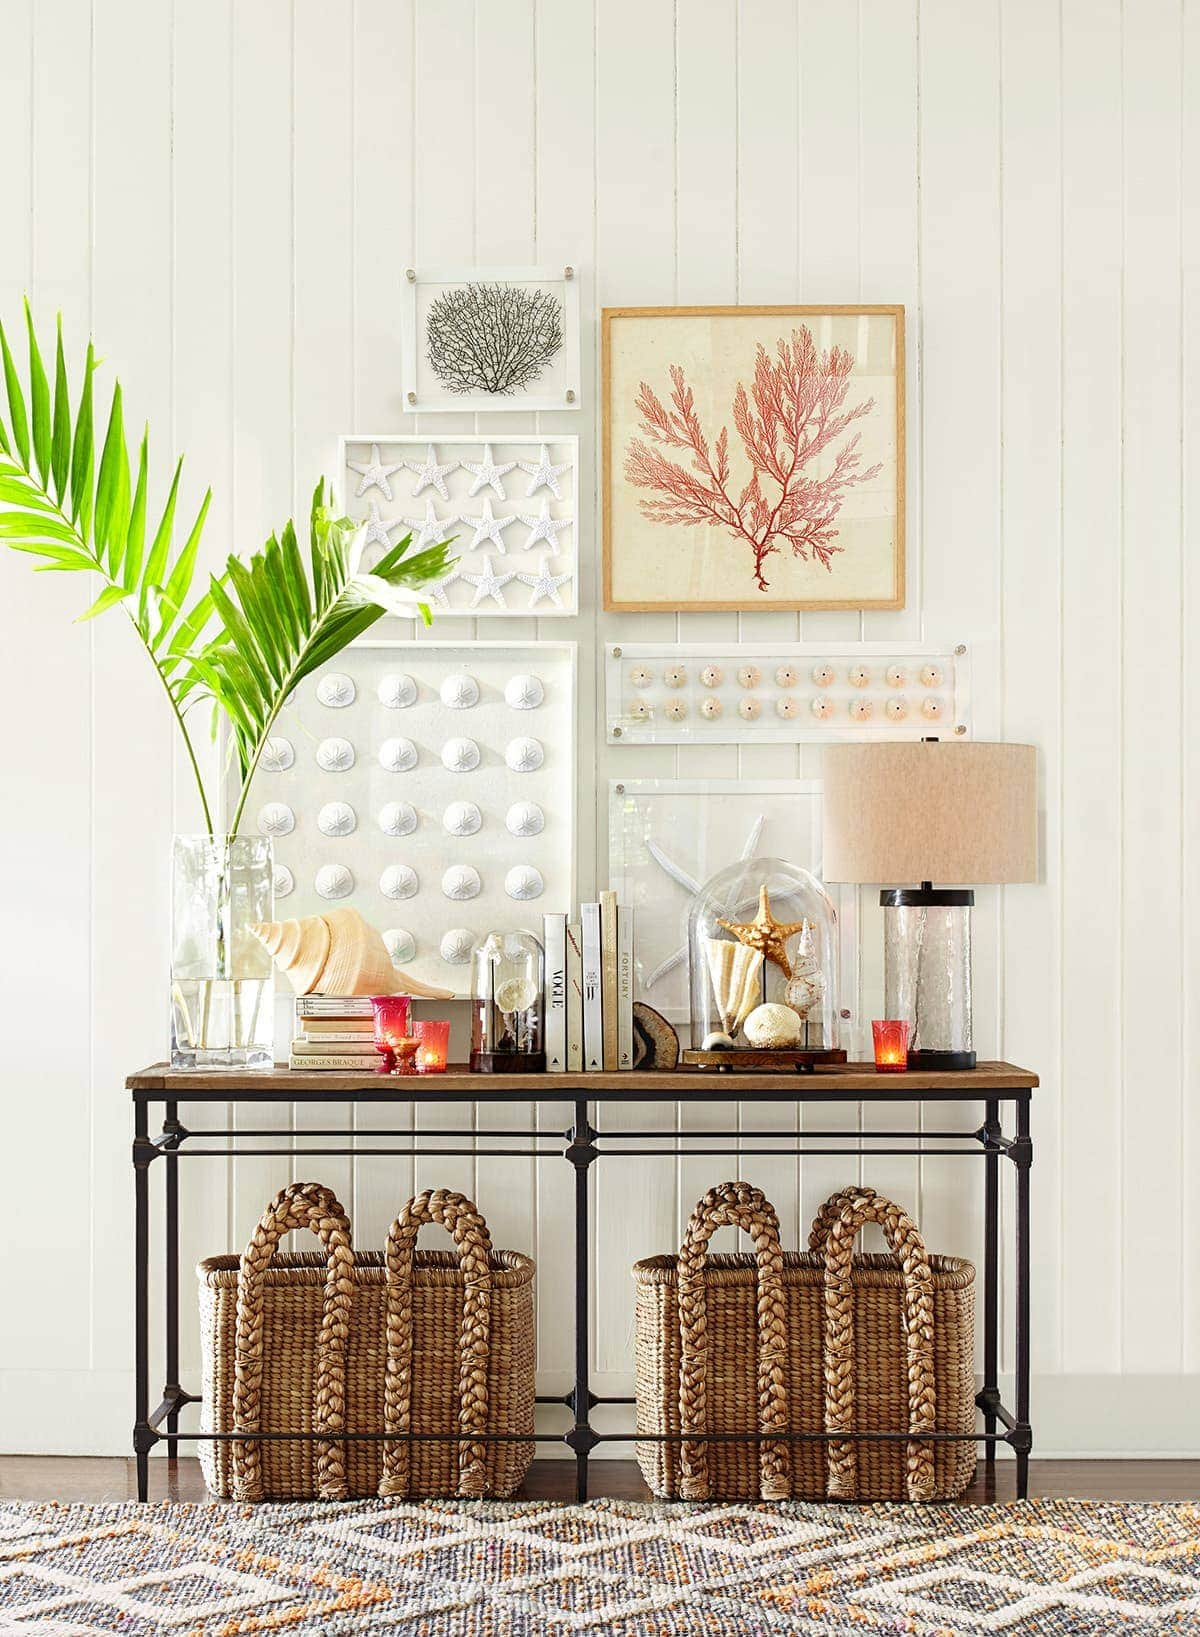 pottery barn entry table with wicker baskets underneath and coastal styling on top